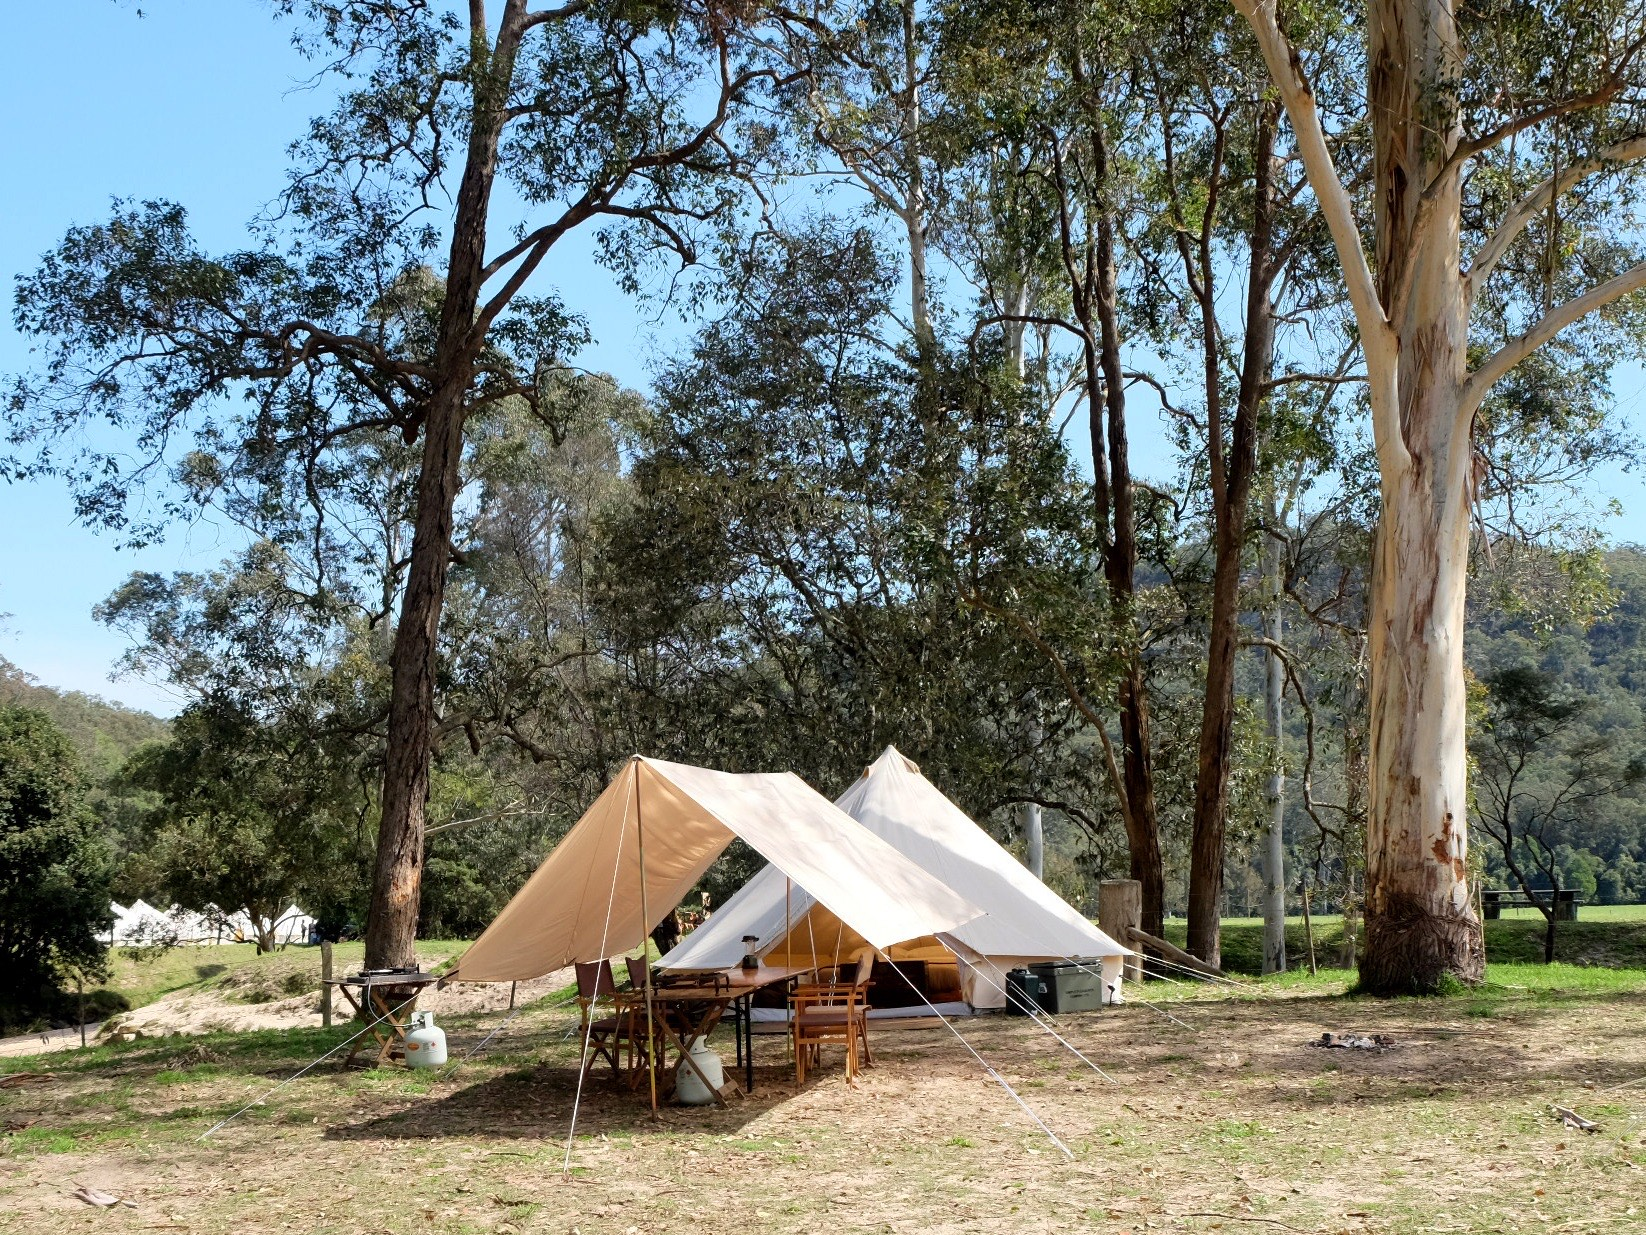 Simple Pleasures Camping Awning Entrance Shelter